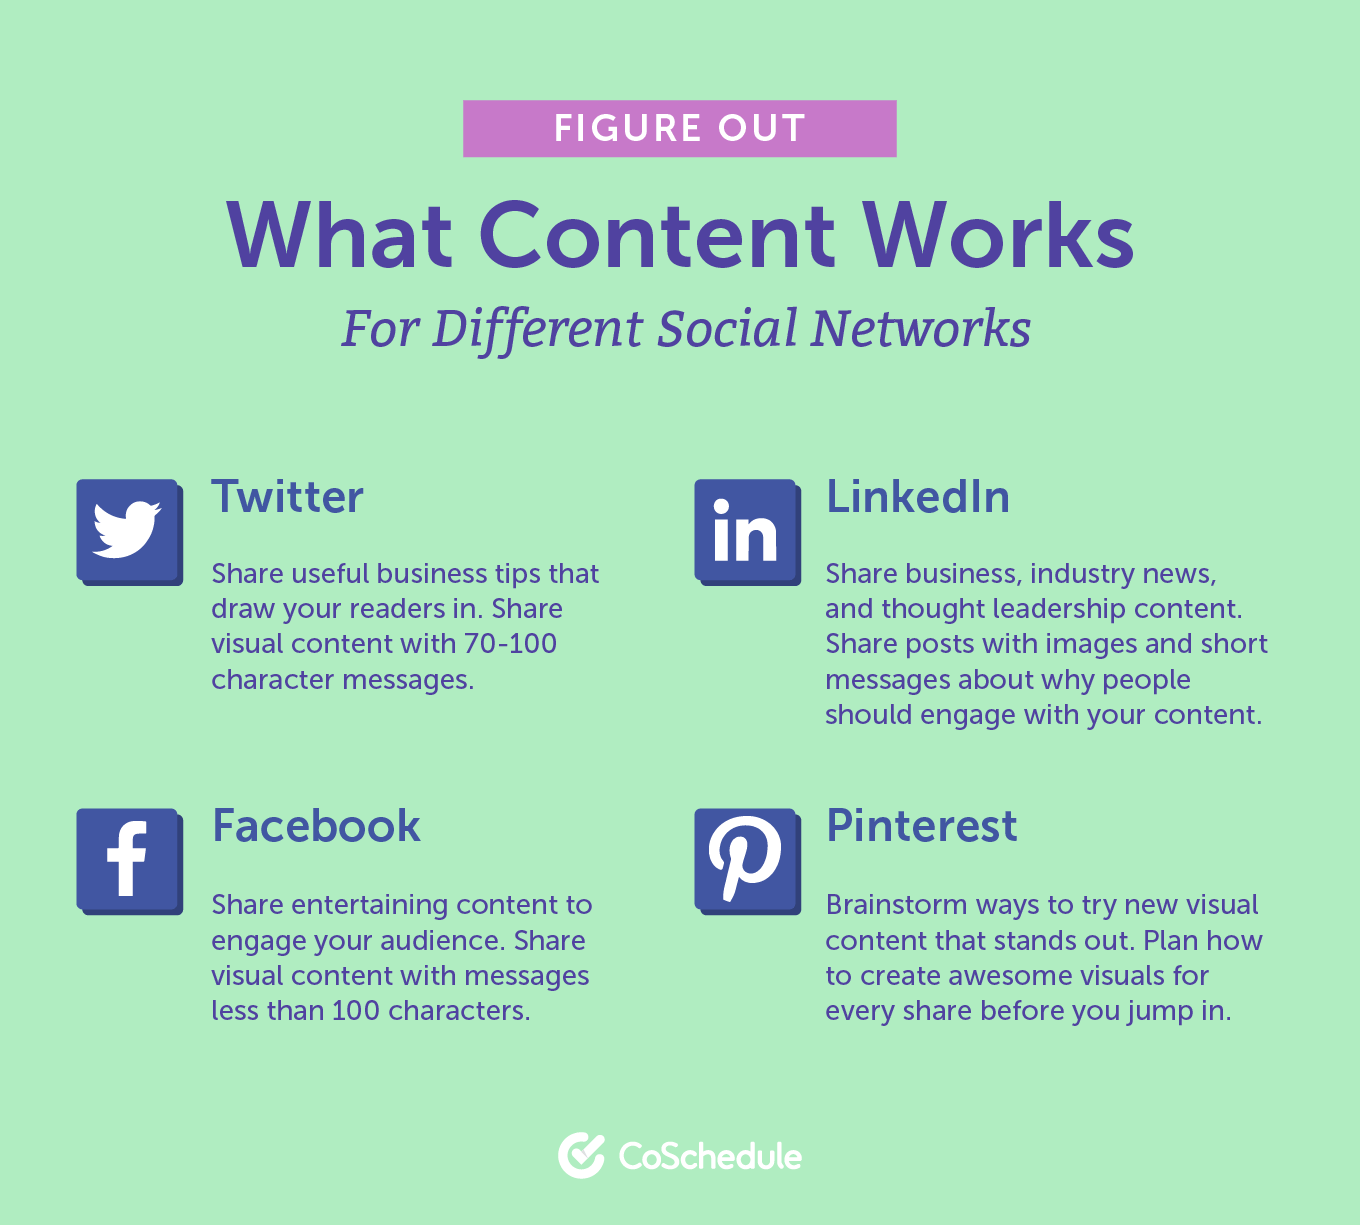 Figuring out what content works for social networks